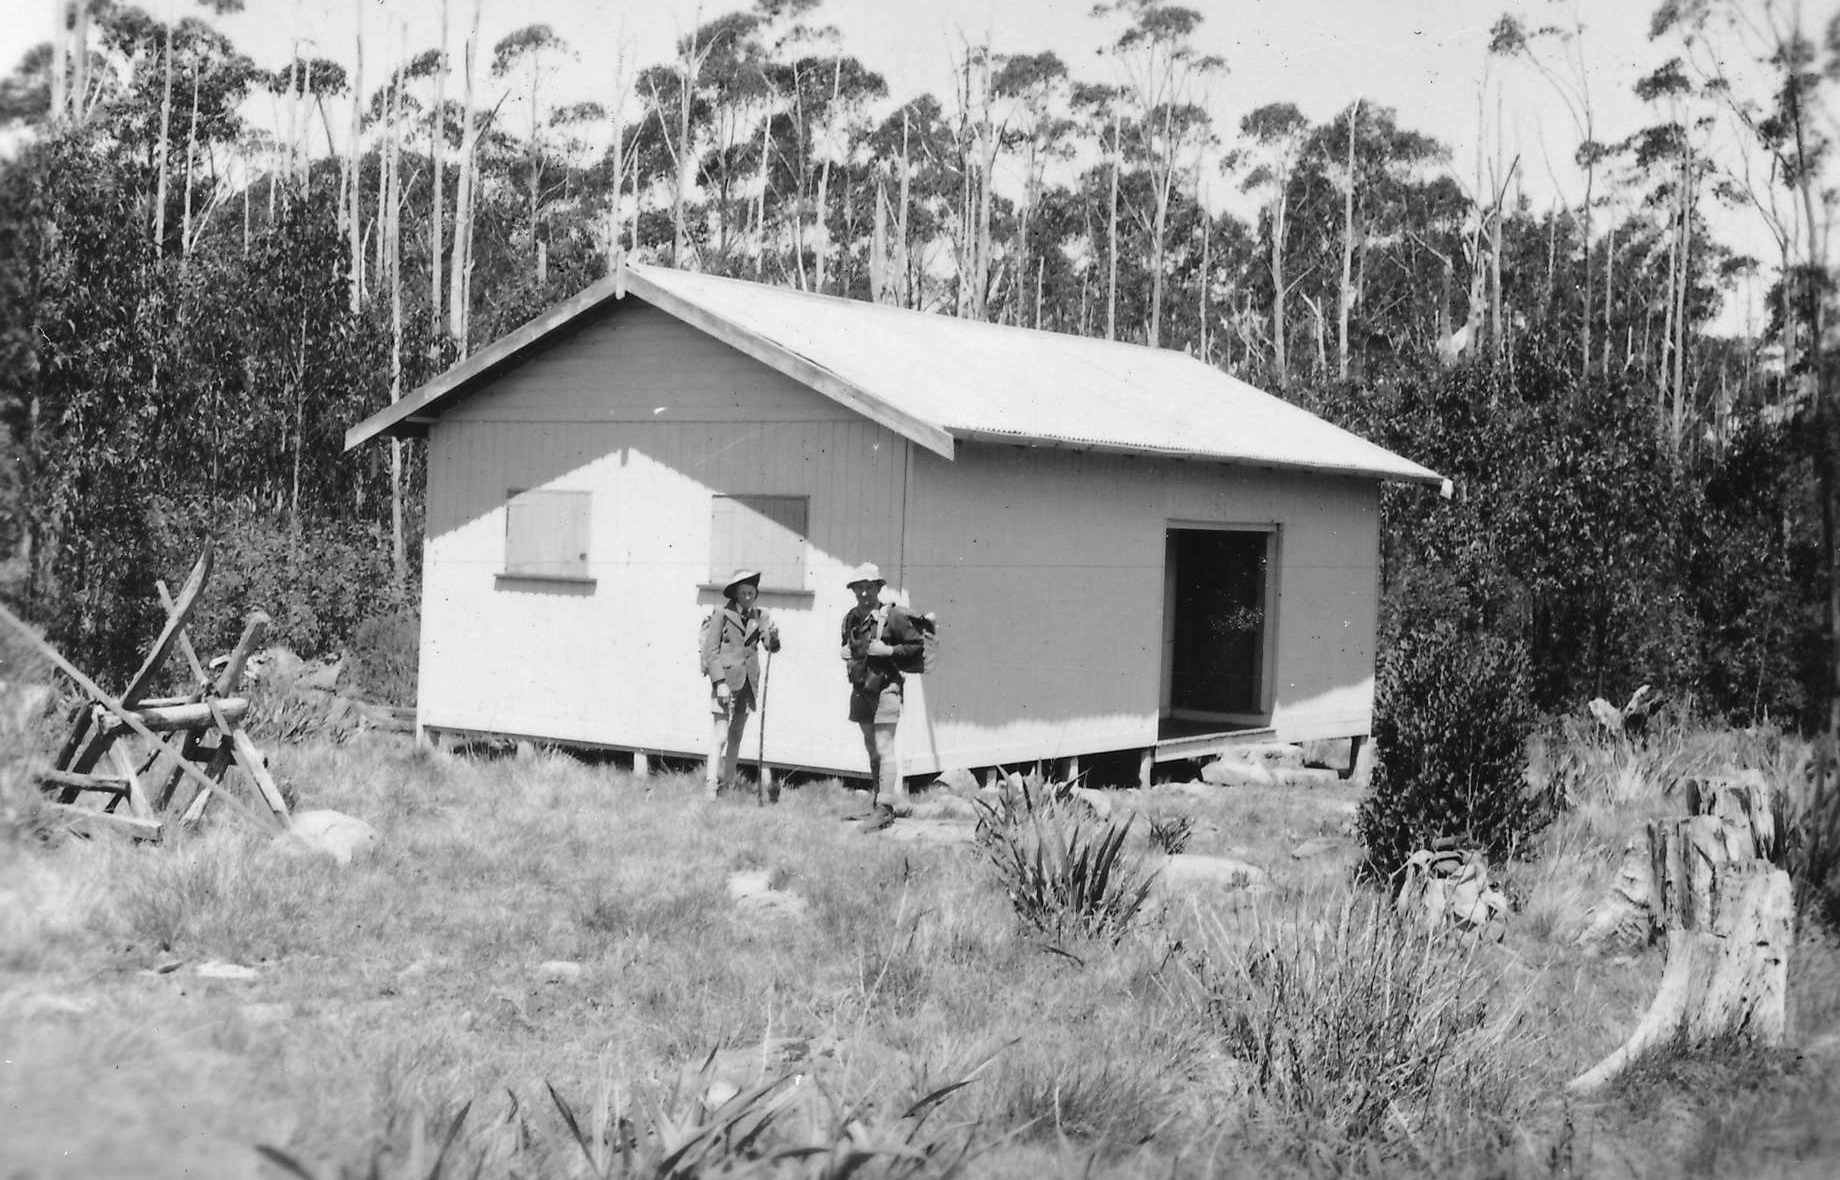 The rebuilt Melbourne Walking Club hut on the same site in 1950. Used with permission